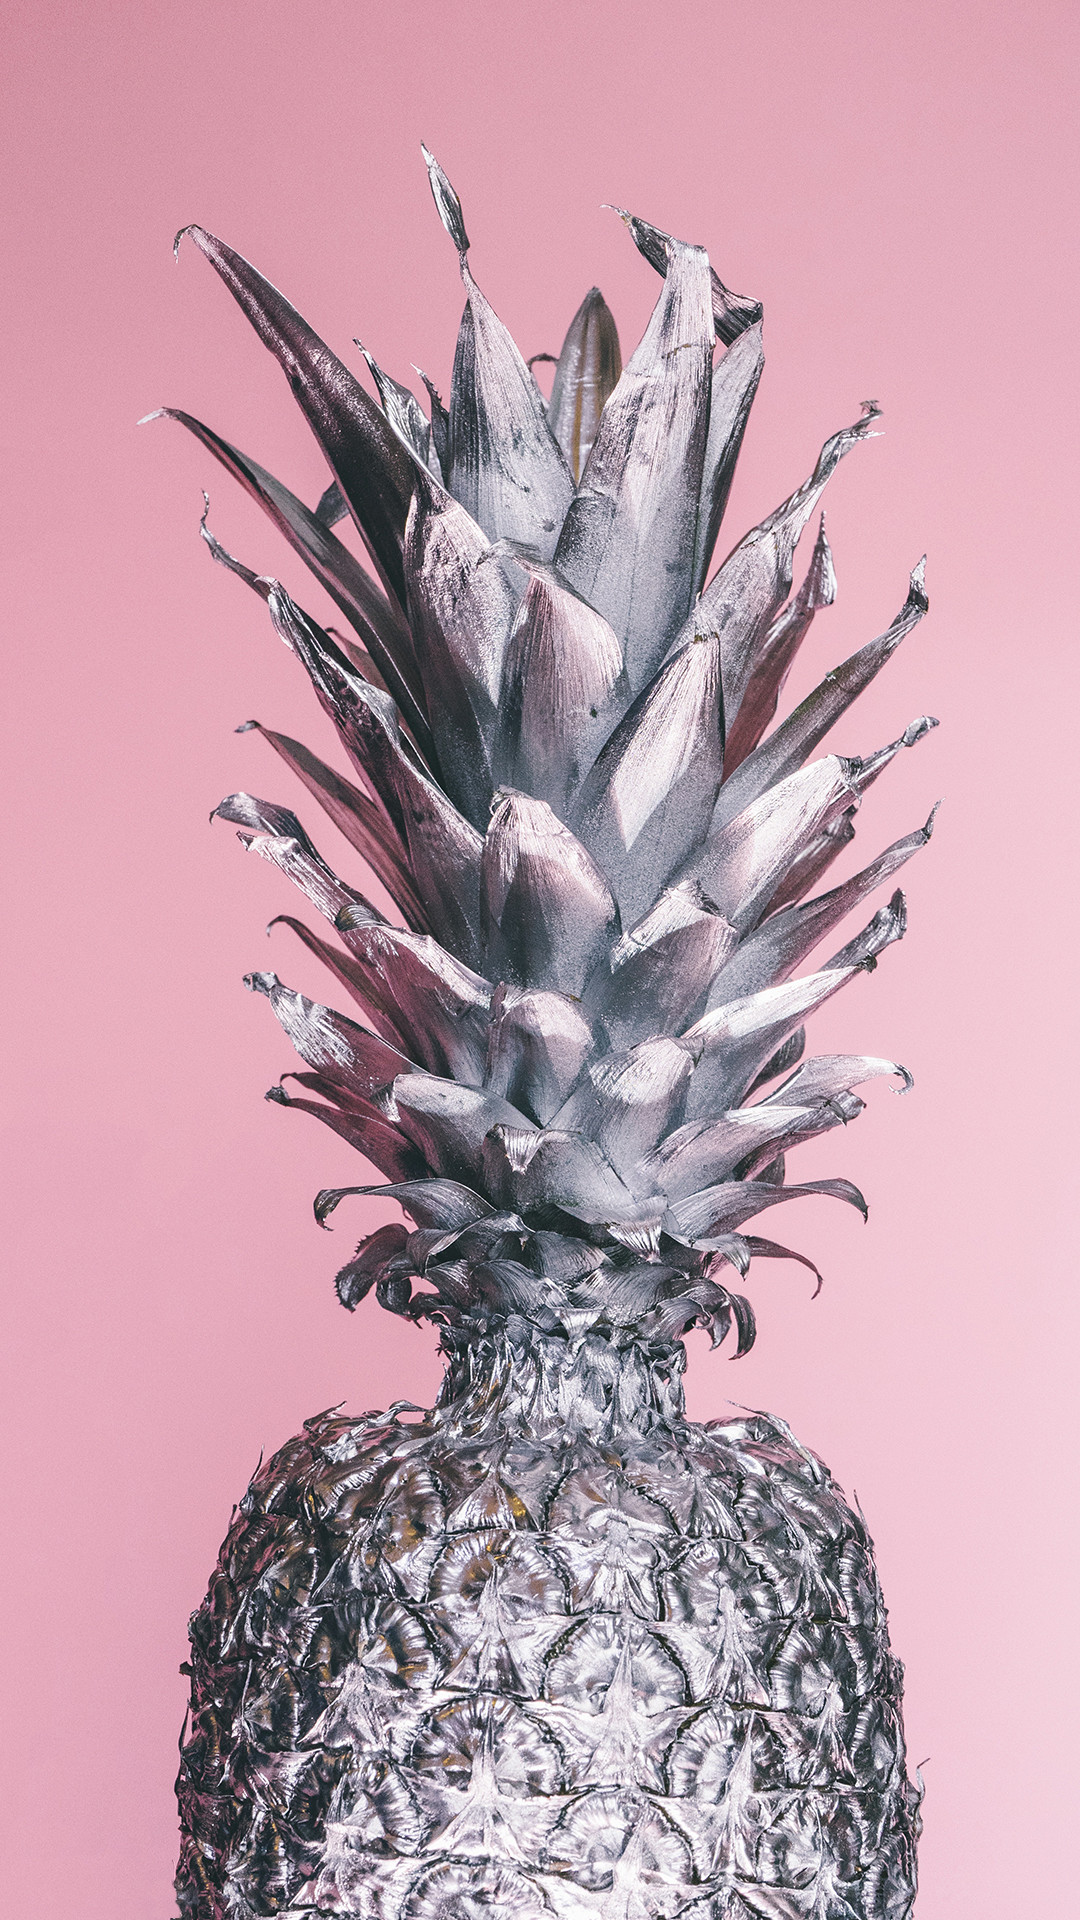 Download this cool pineapple wallpaper